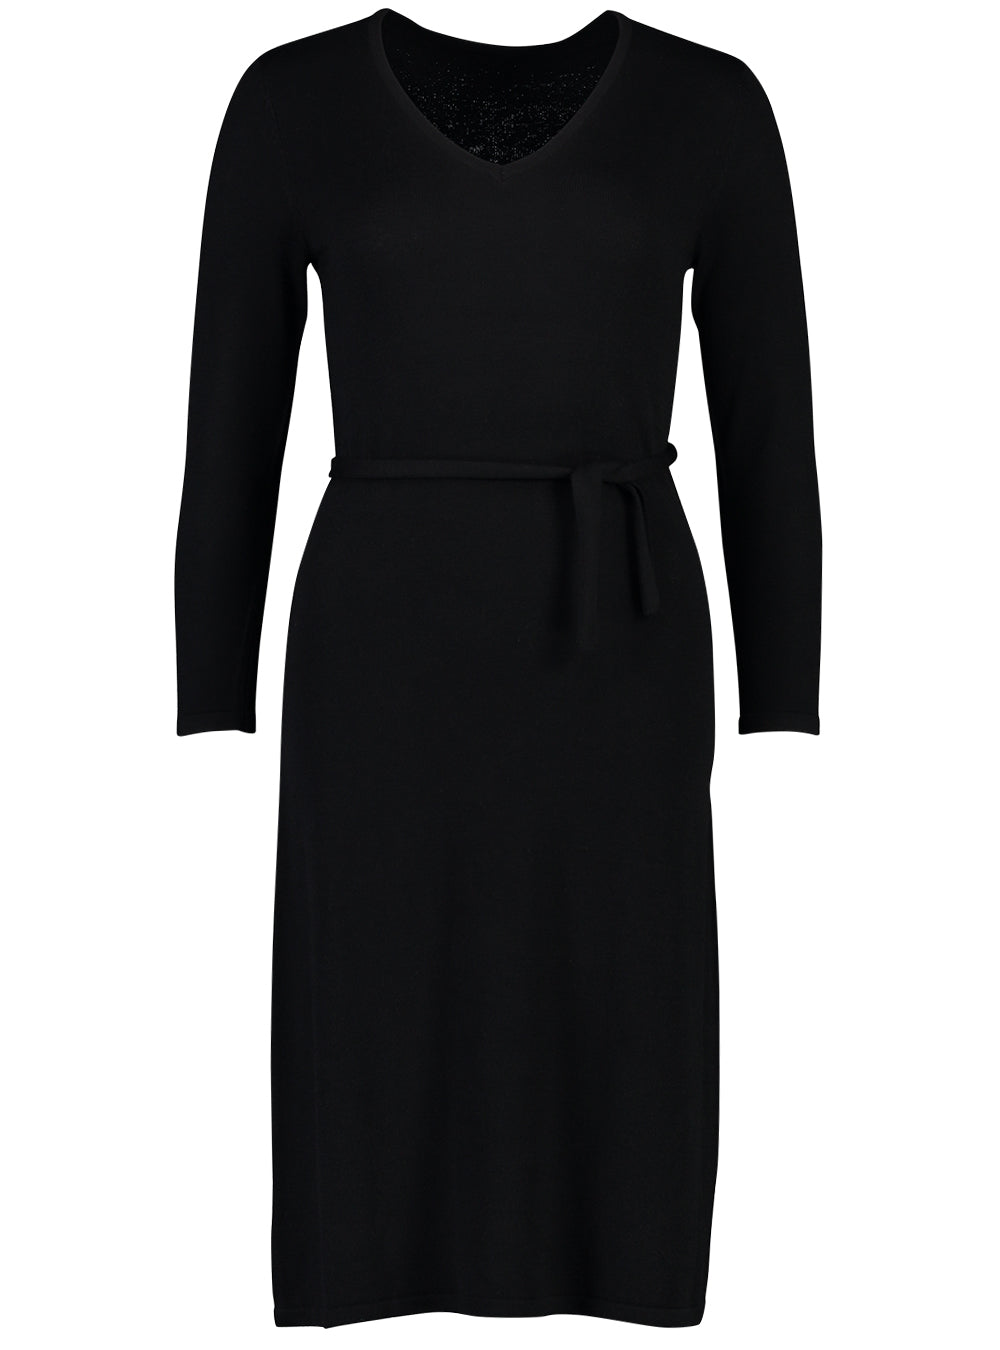 knit dress fine black_Front.jpg